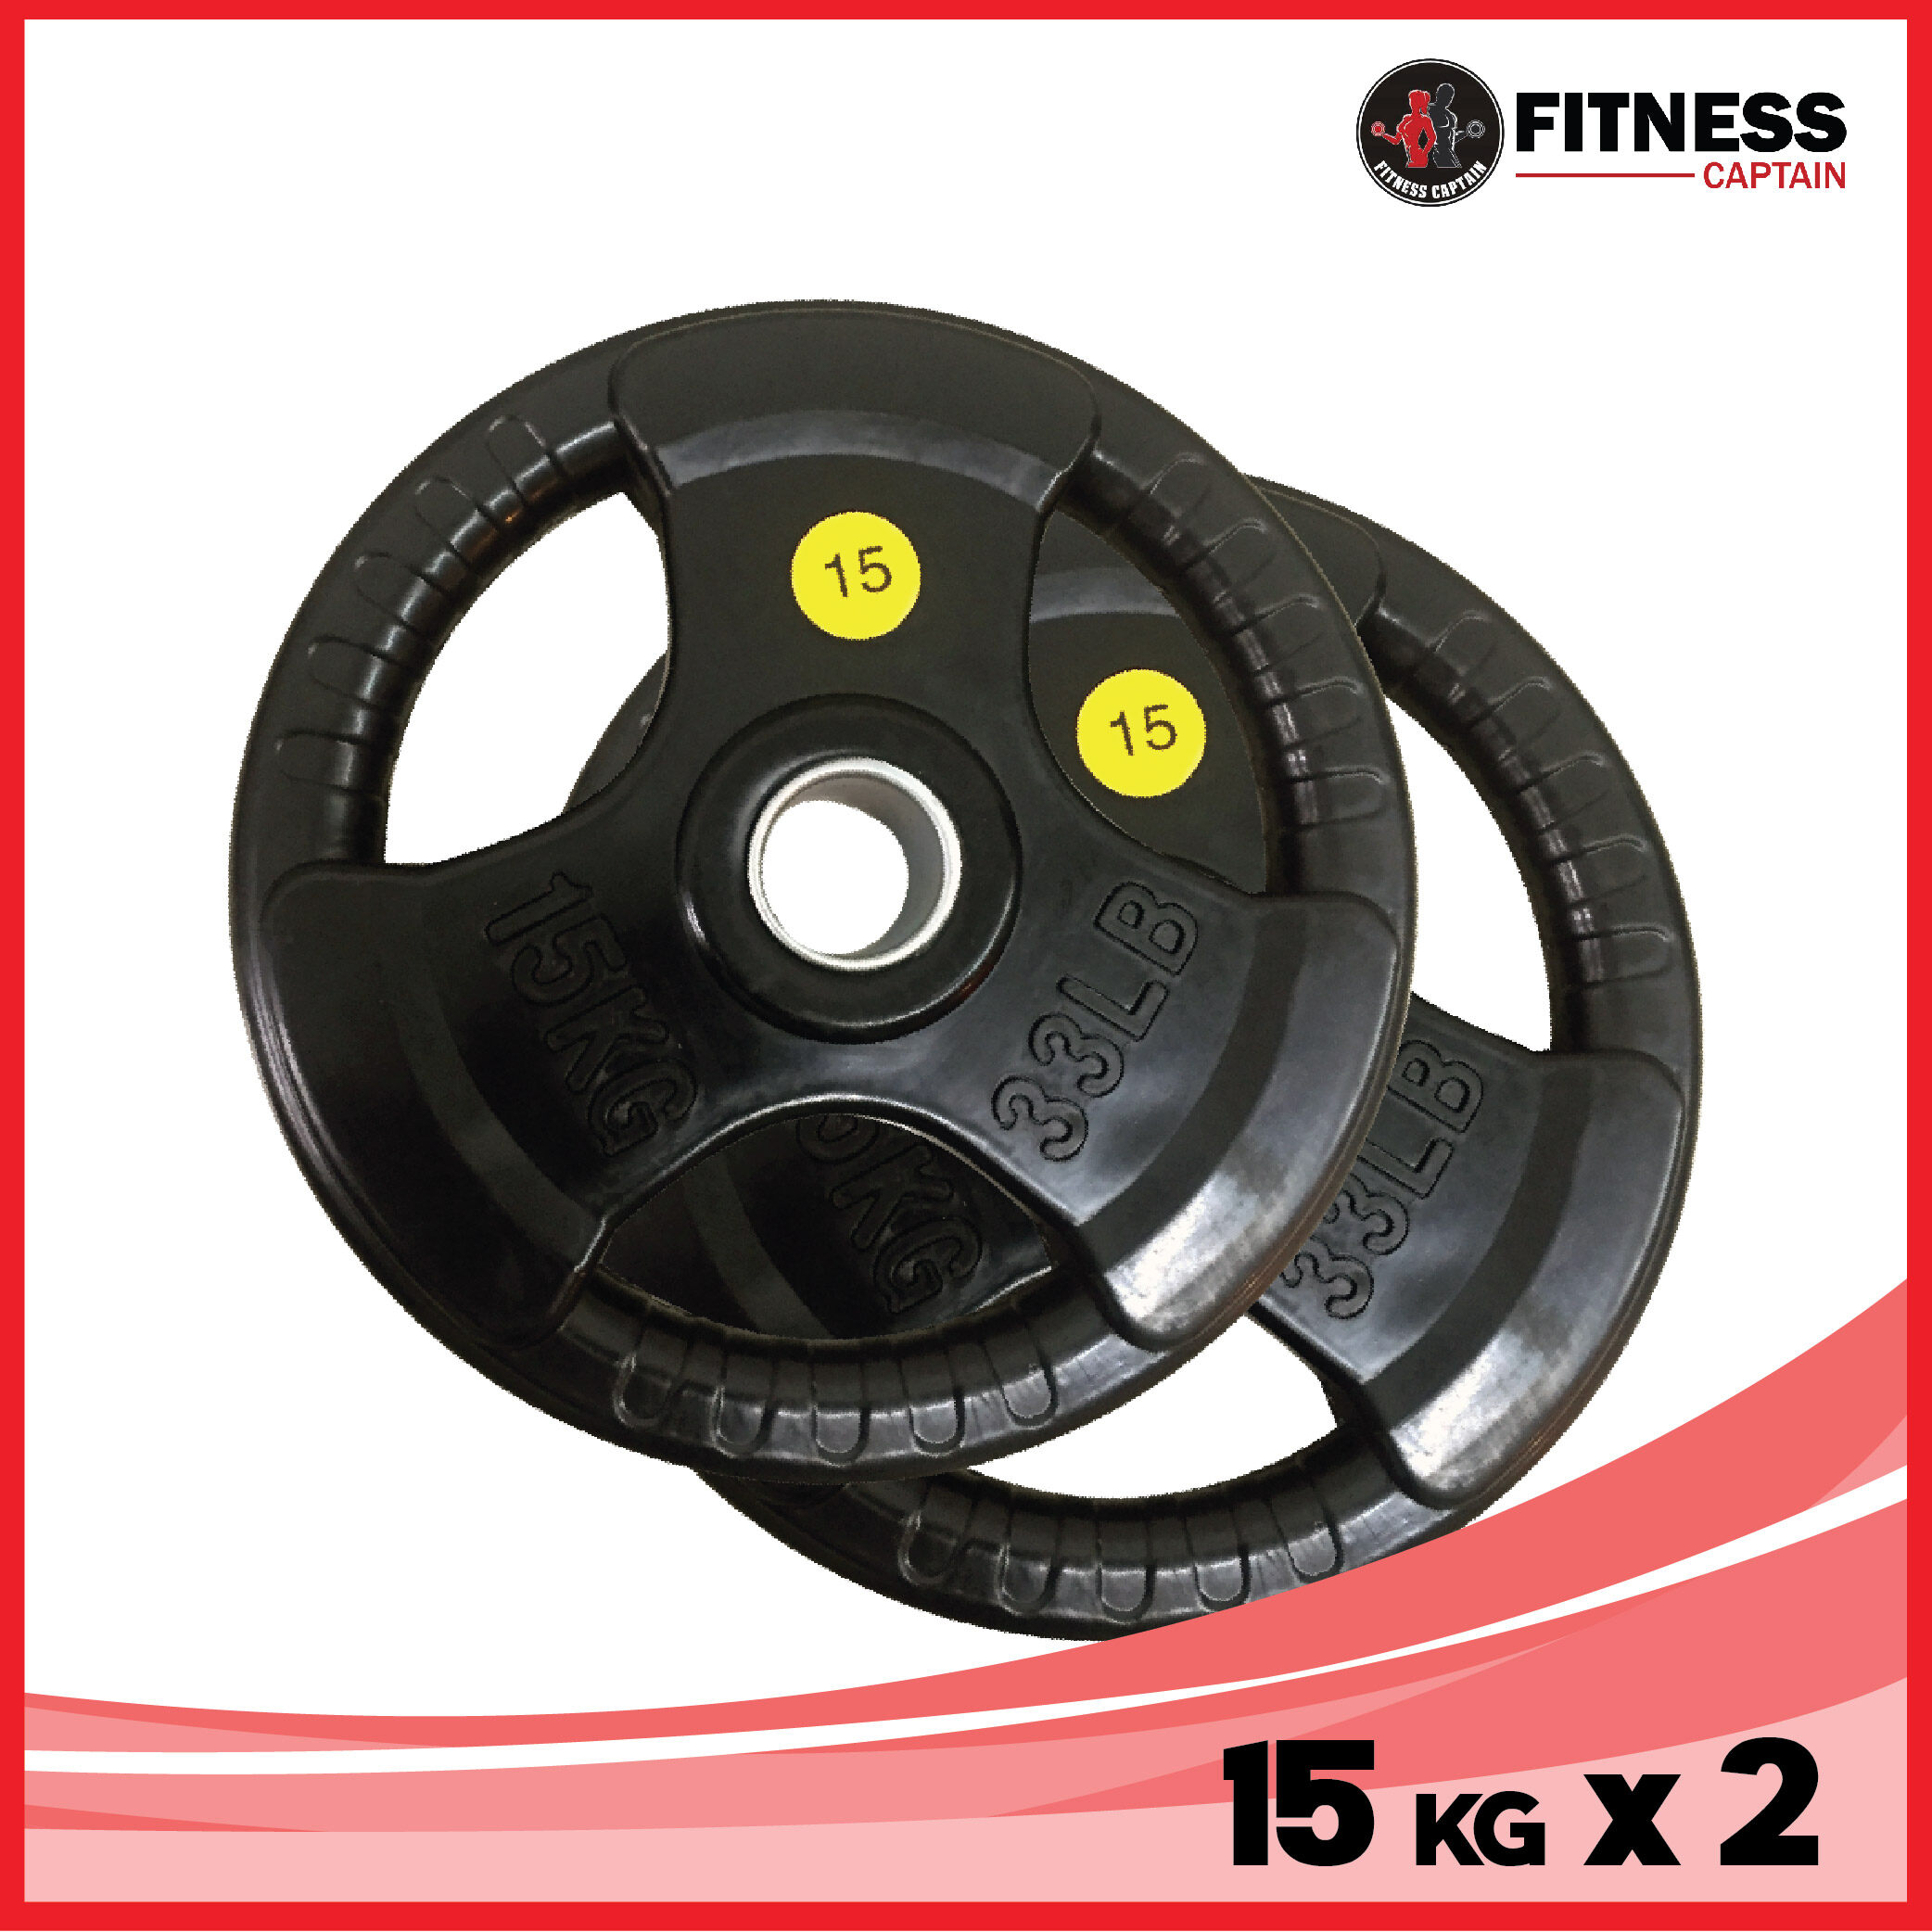 Fitness Captain 15kg Set of 2 ( 2 x 15kg ) Gym Olympic Rubber Weight Plate